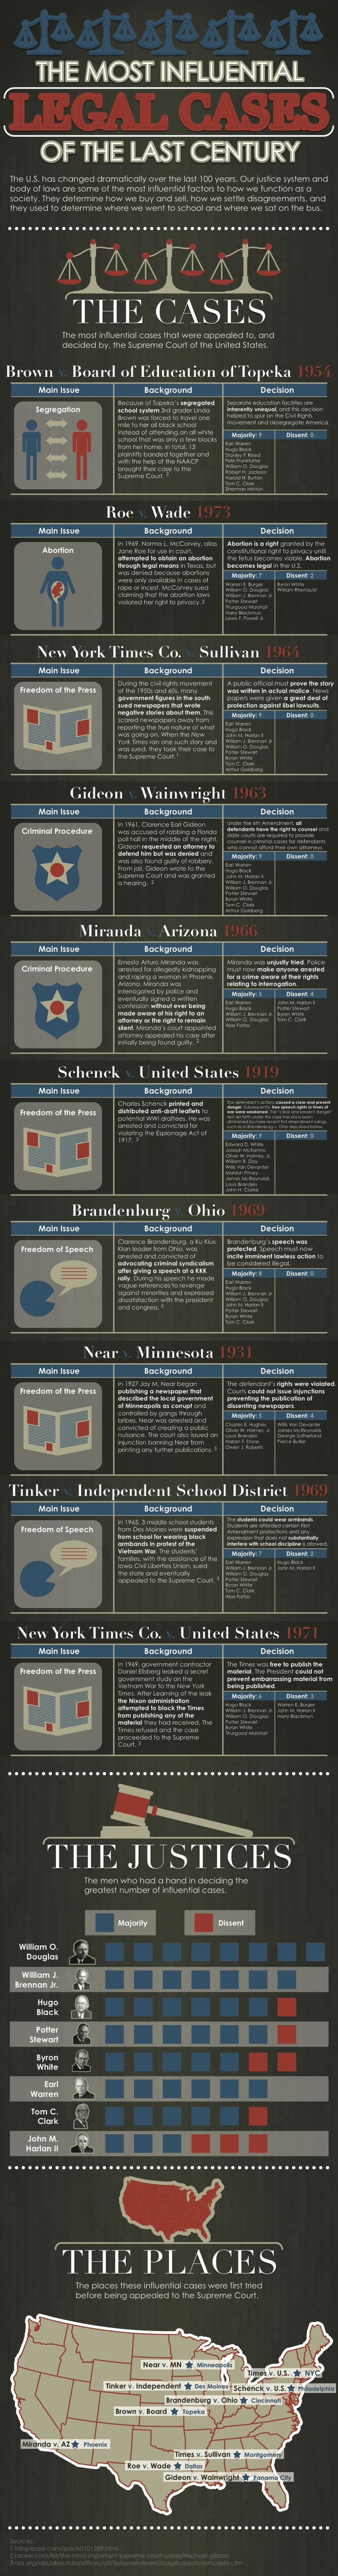 The Most Influential Legal Cases of the Last Century - Infographic